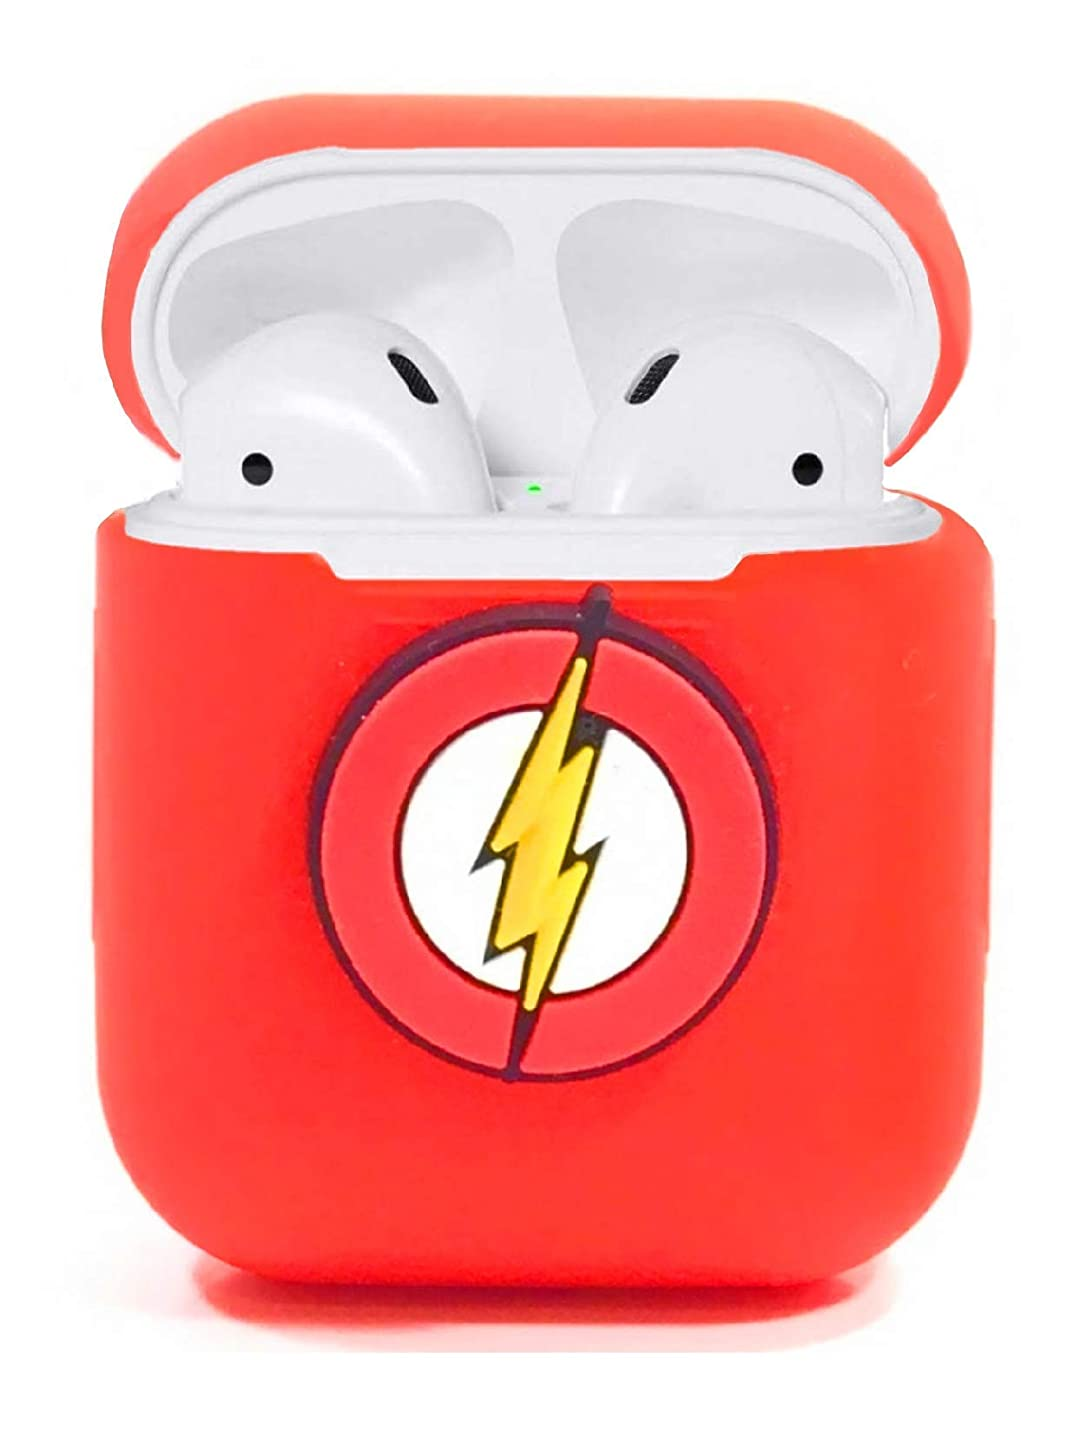 Apple AirPods Accessories Skin Cover Protective Case - The Flash. (Red)